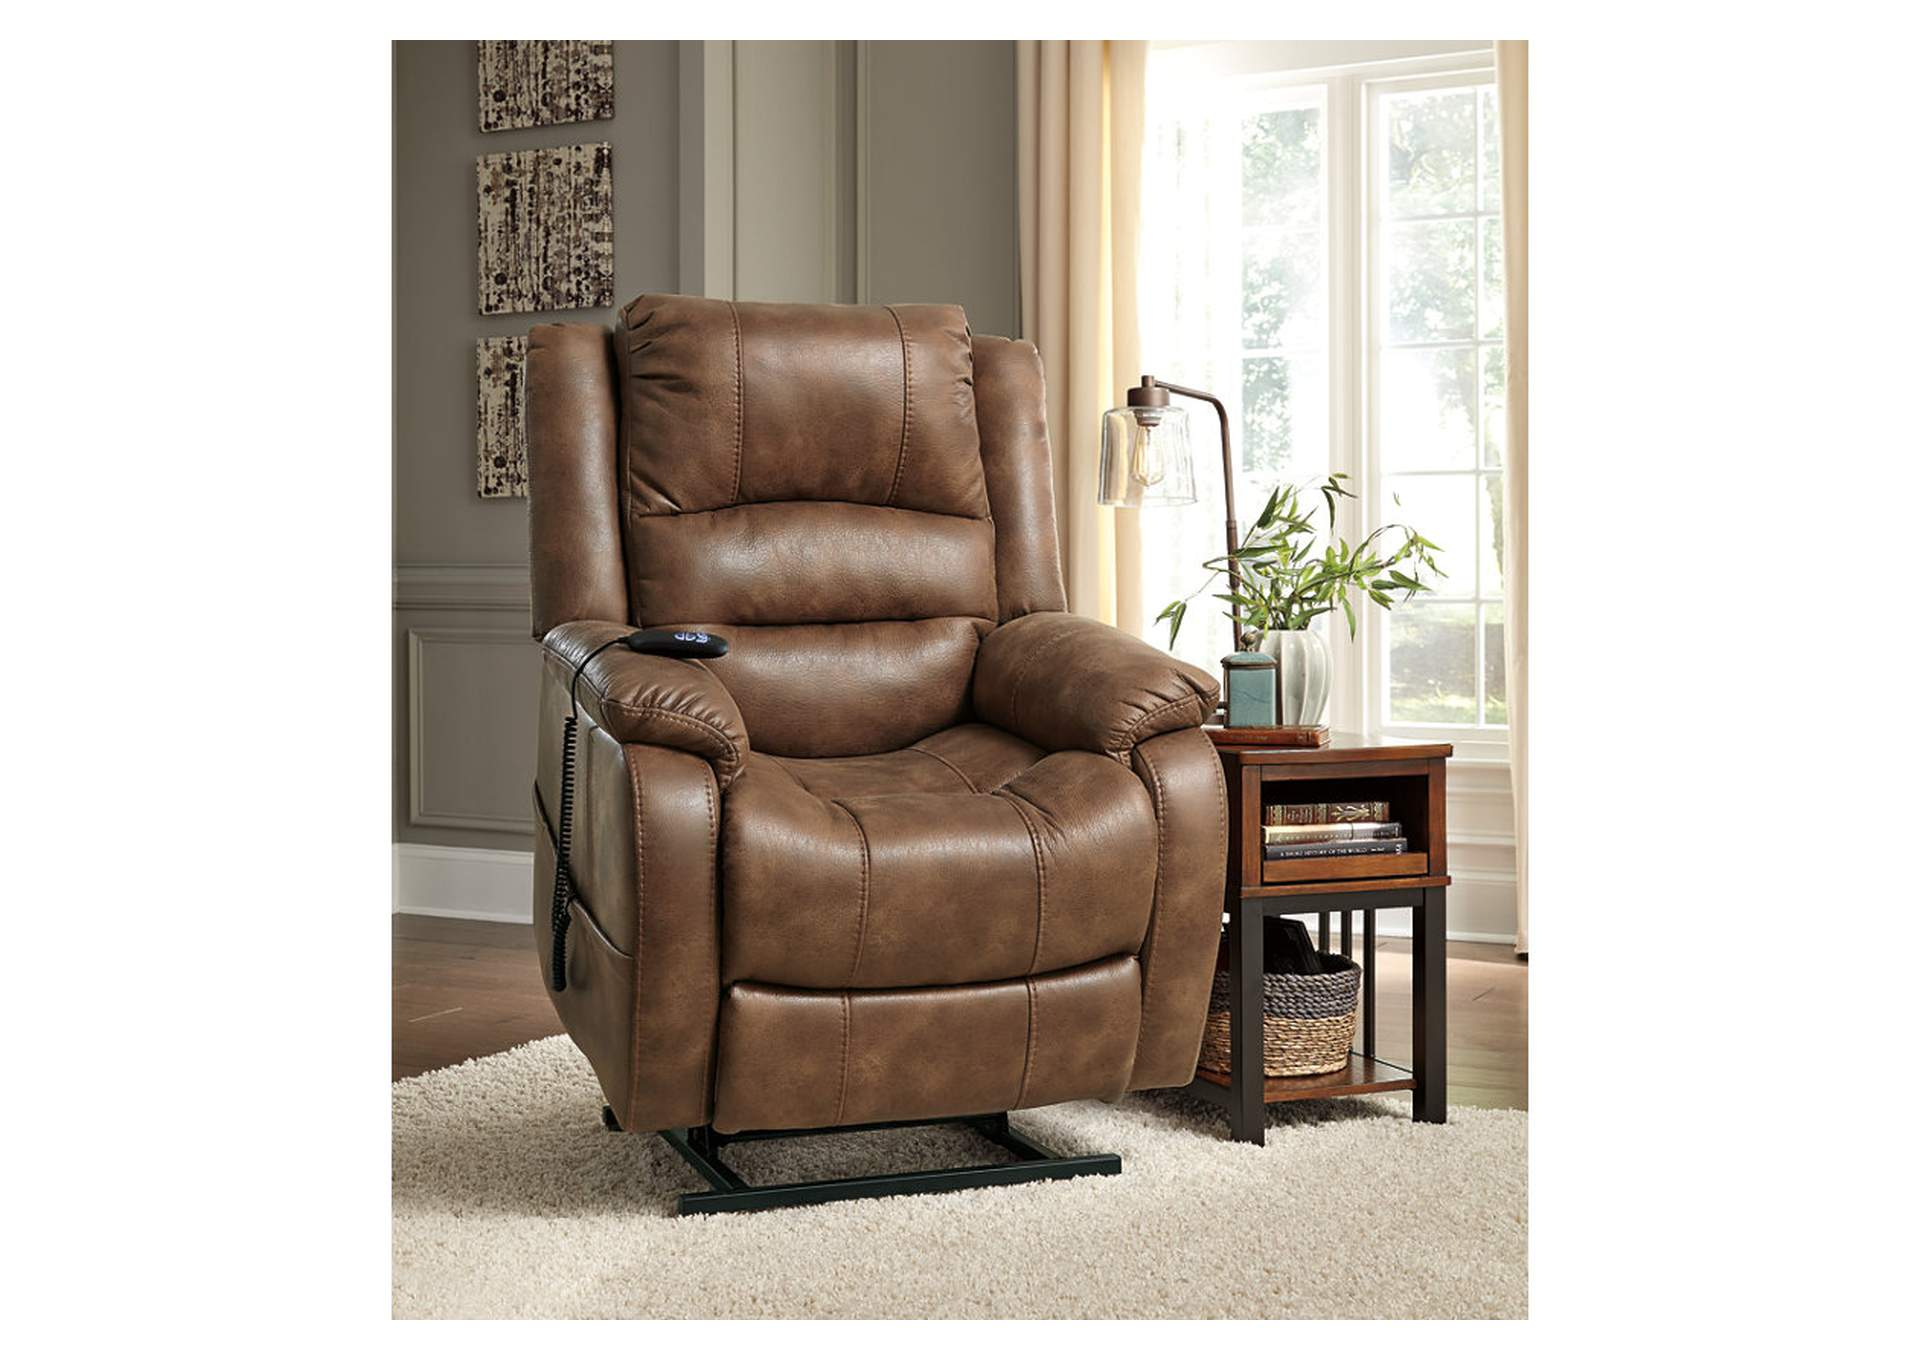 Irving Blvd Furniture Yandel Saddle Power Lift Recliner